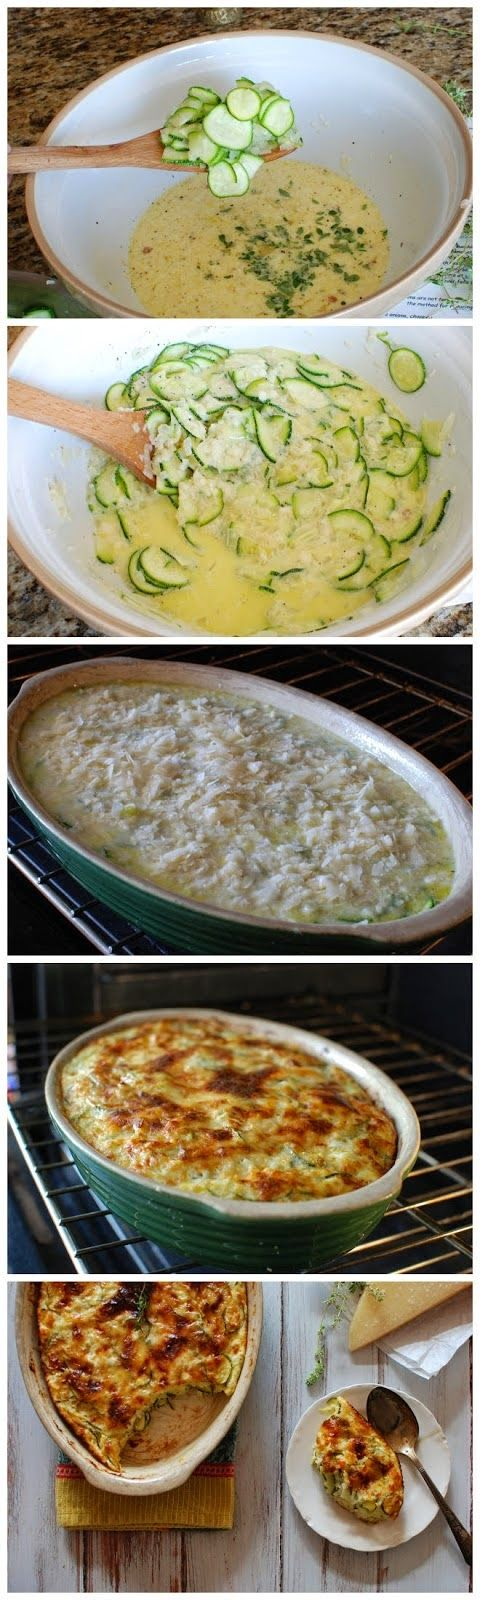 Zucchini Gratin - I think you could make a gratin out of anything and it would be delicious!